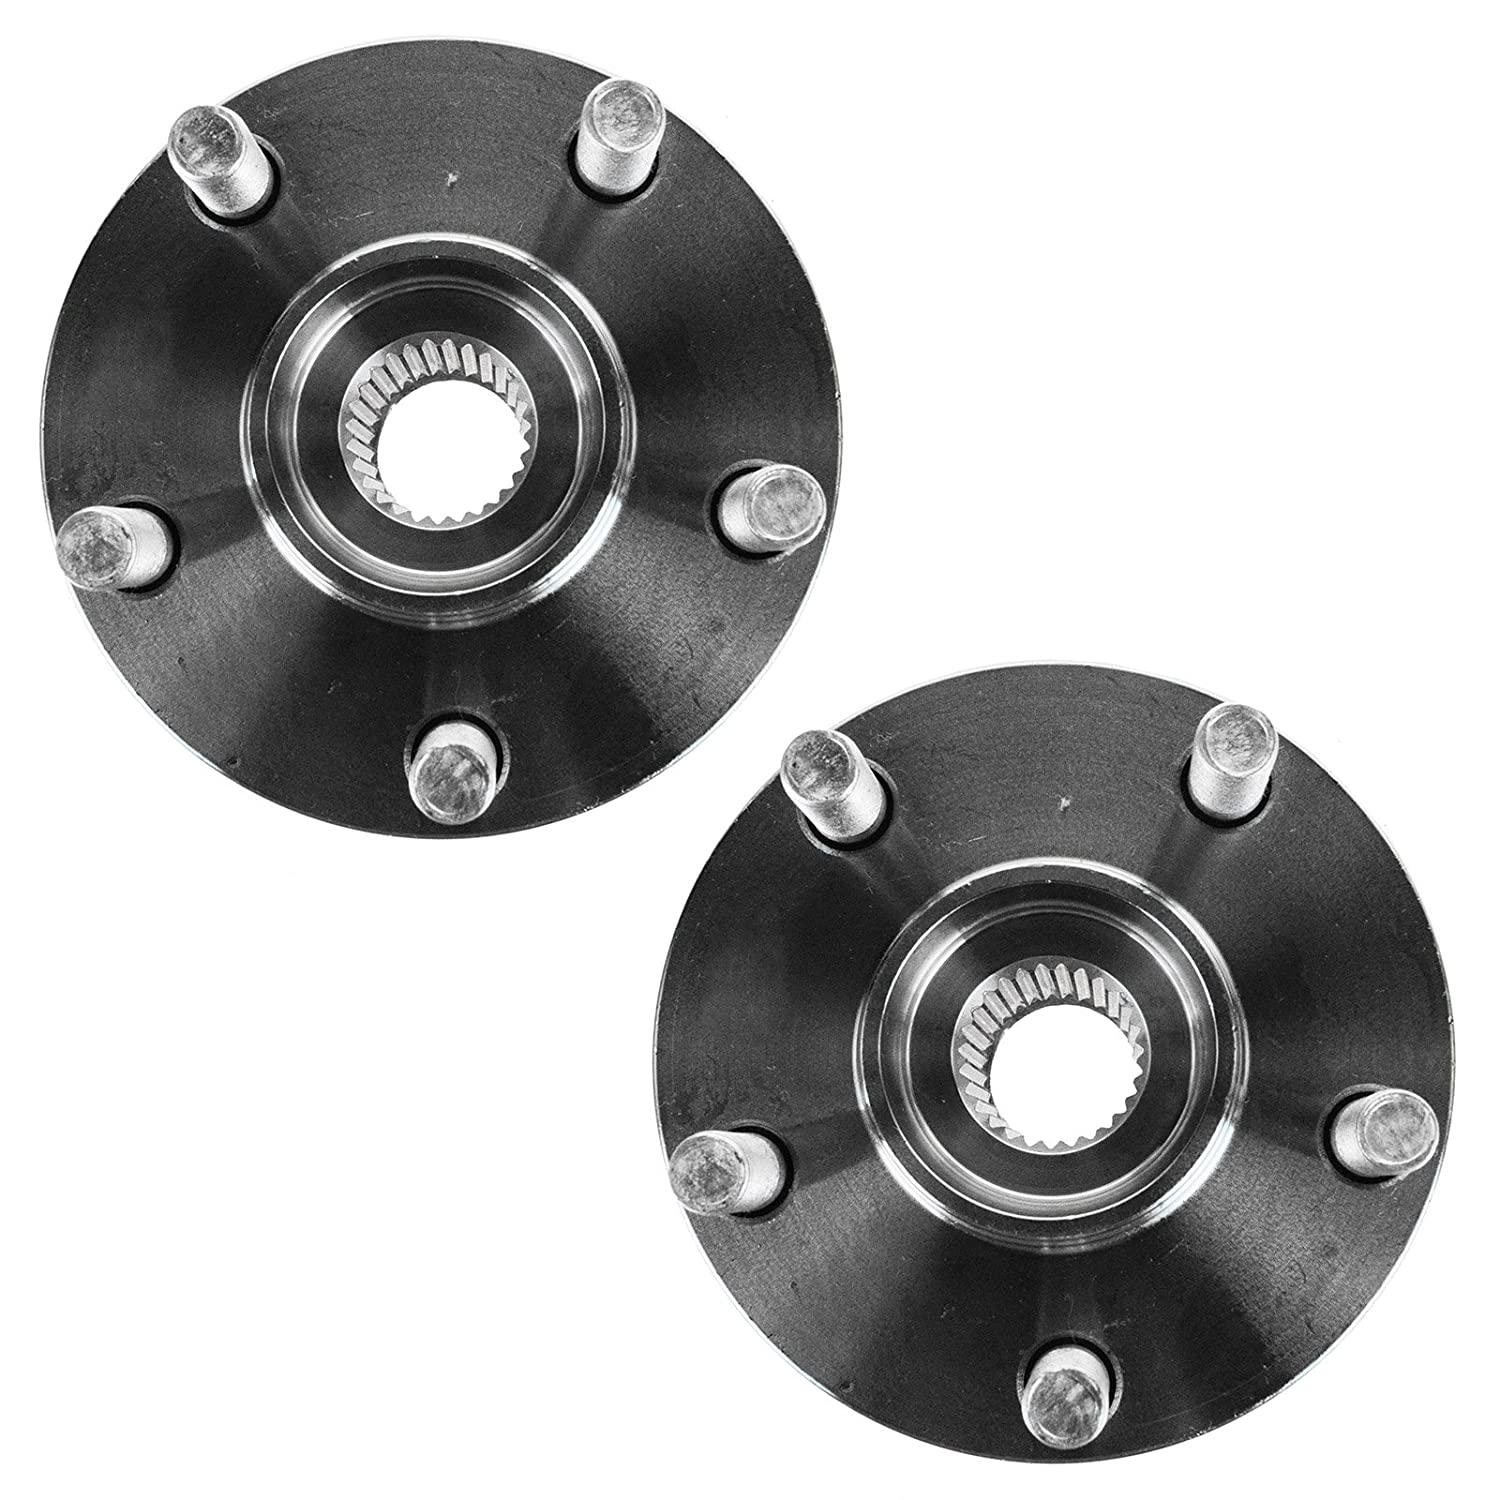 Rear Wheel Hub /& Bearing Left Right Pair Set for Impreza Legacy Forester Outback